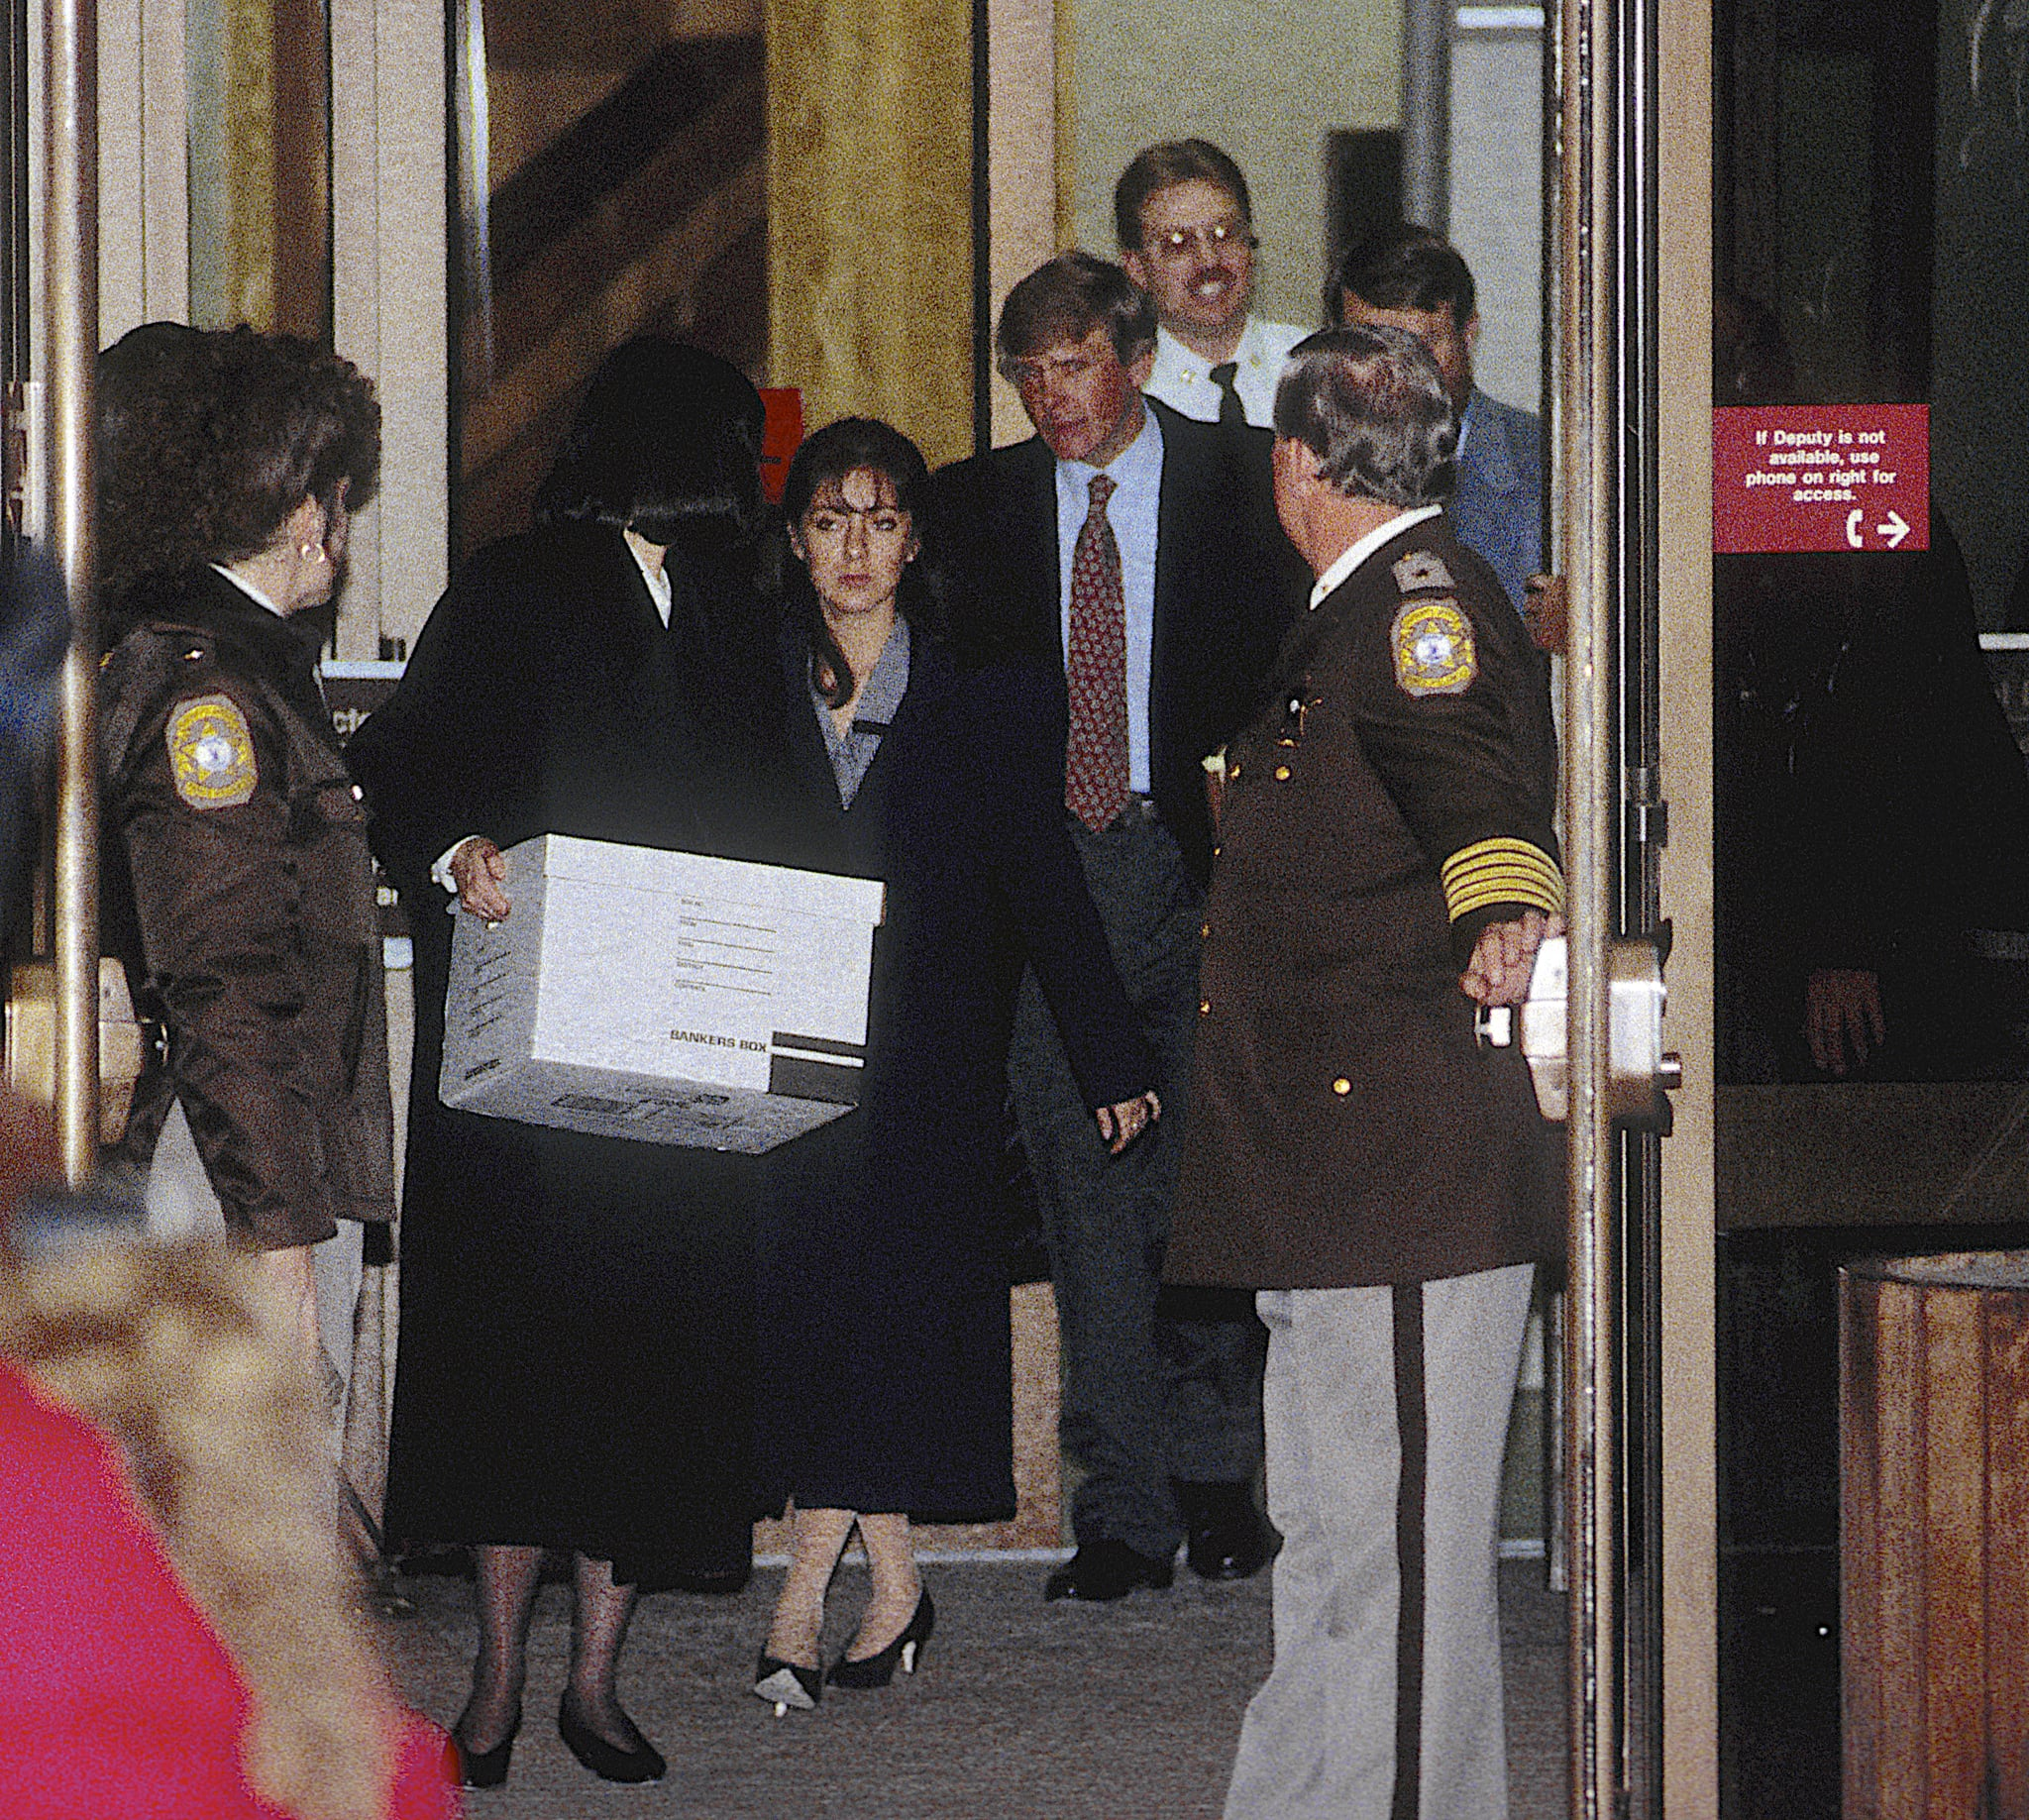 On the second day of her trial, the accused, Lorena Bobbitt (centre), and her lawyers, Lisa Kemler (with box), Blair Howard (red tie), and James Lowe (right, mostly obscured behind deputy), leave the Prince William County Courthouse, Manassas, Virginia, January 11, 1994. Bobbitt was accused (and later acquitted) in the malicious wounding of her husband when she, two years earlier, had severed his penis with a kitchen knife. (Photo by Mark Reinstein/Getty Images)